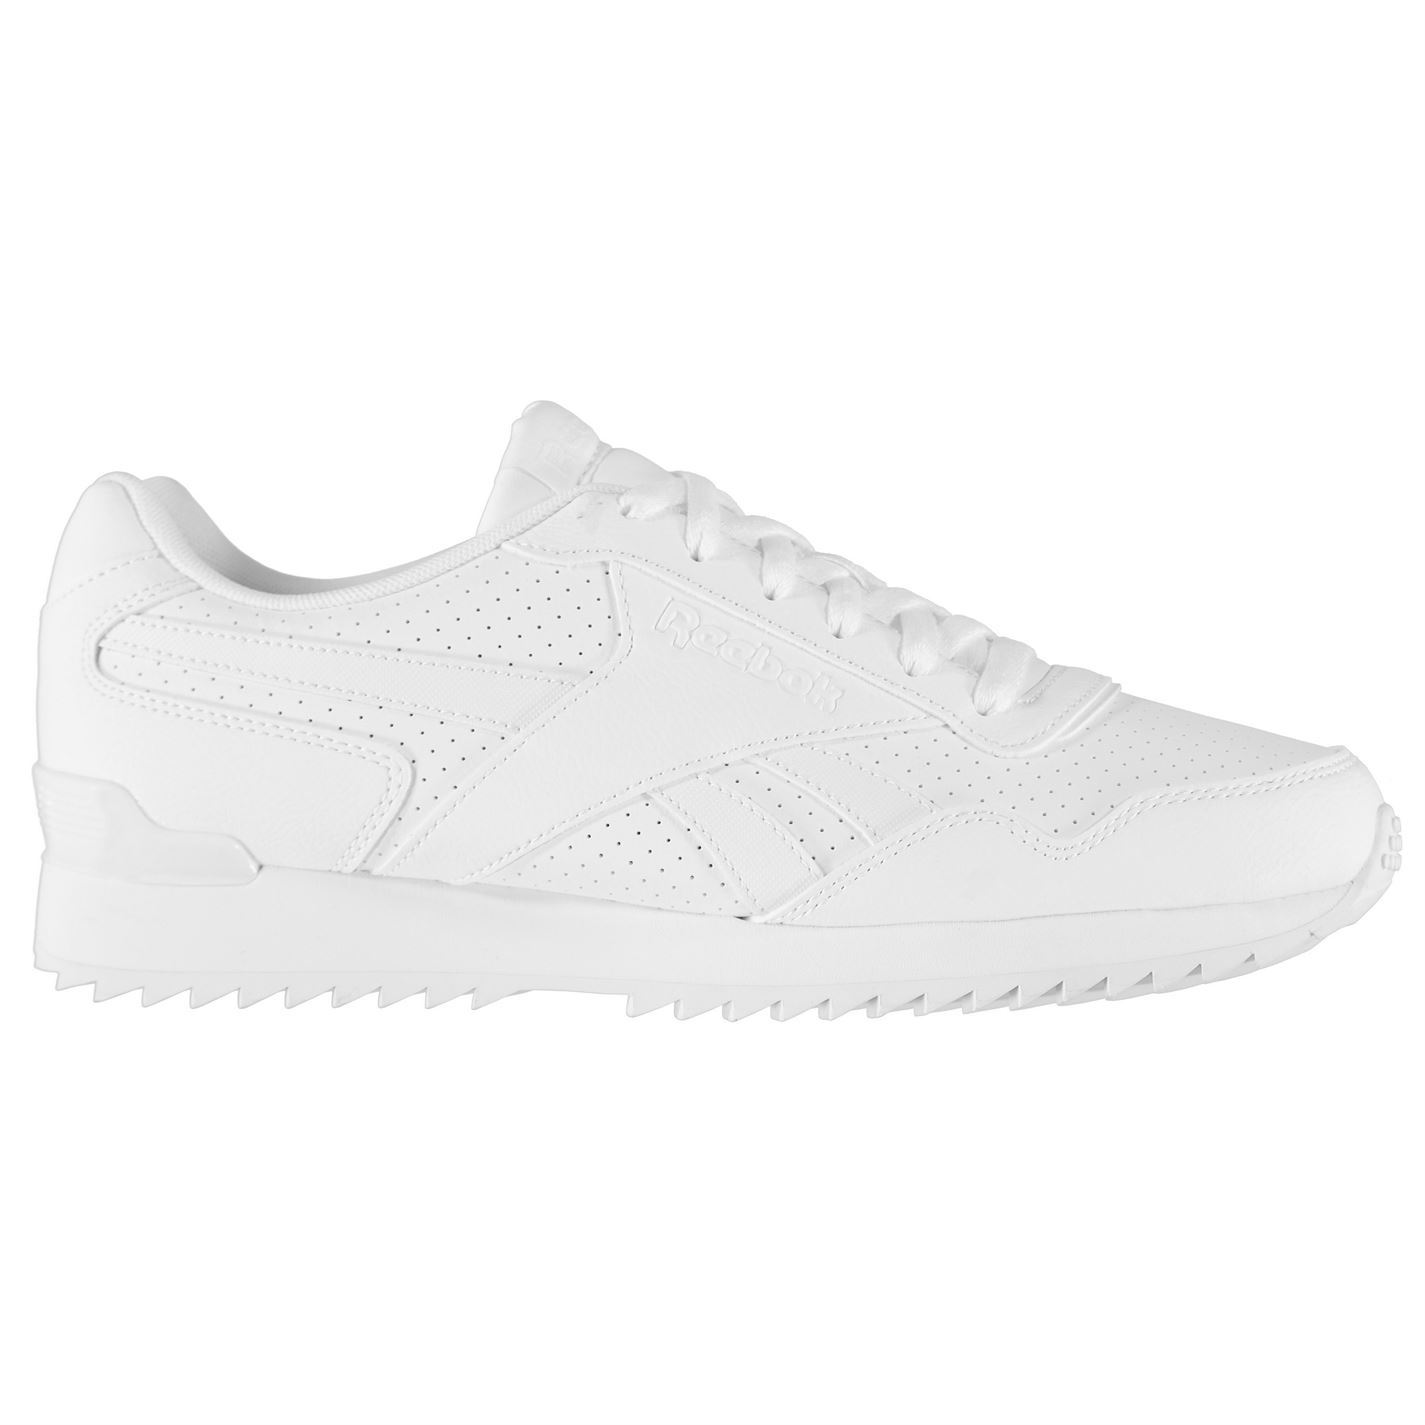 Details about Reebok Royal Glide Ripple Clip Trainers Mens White Sports Shoes Sneakers